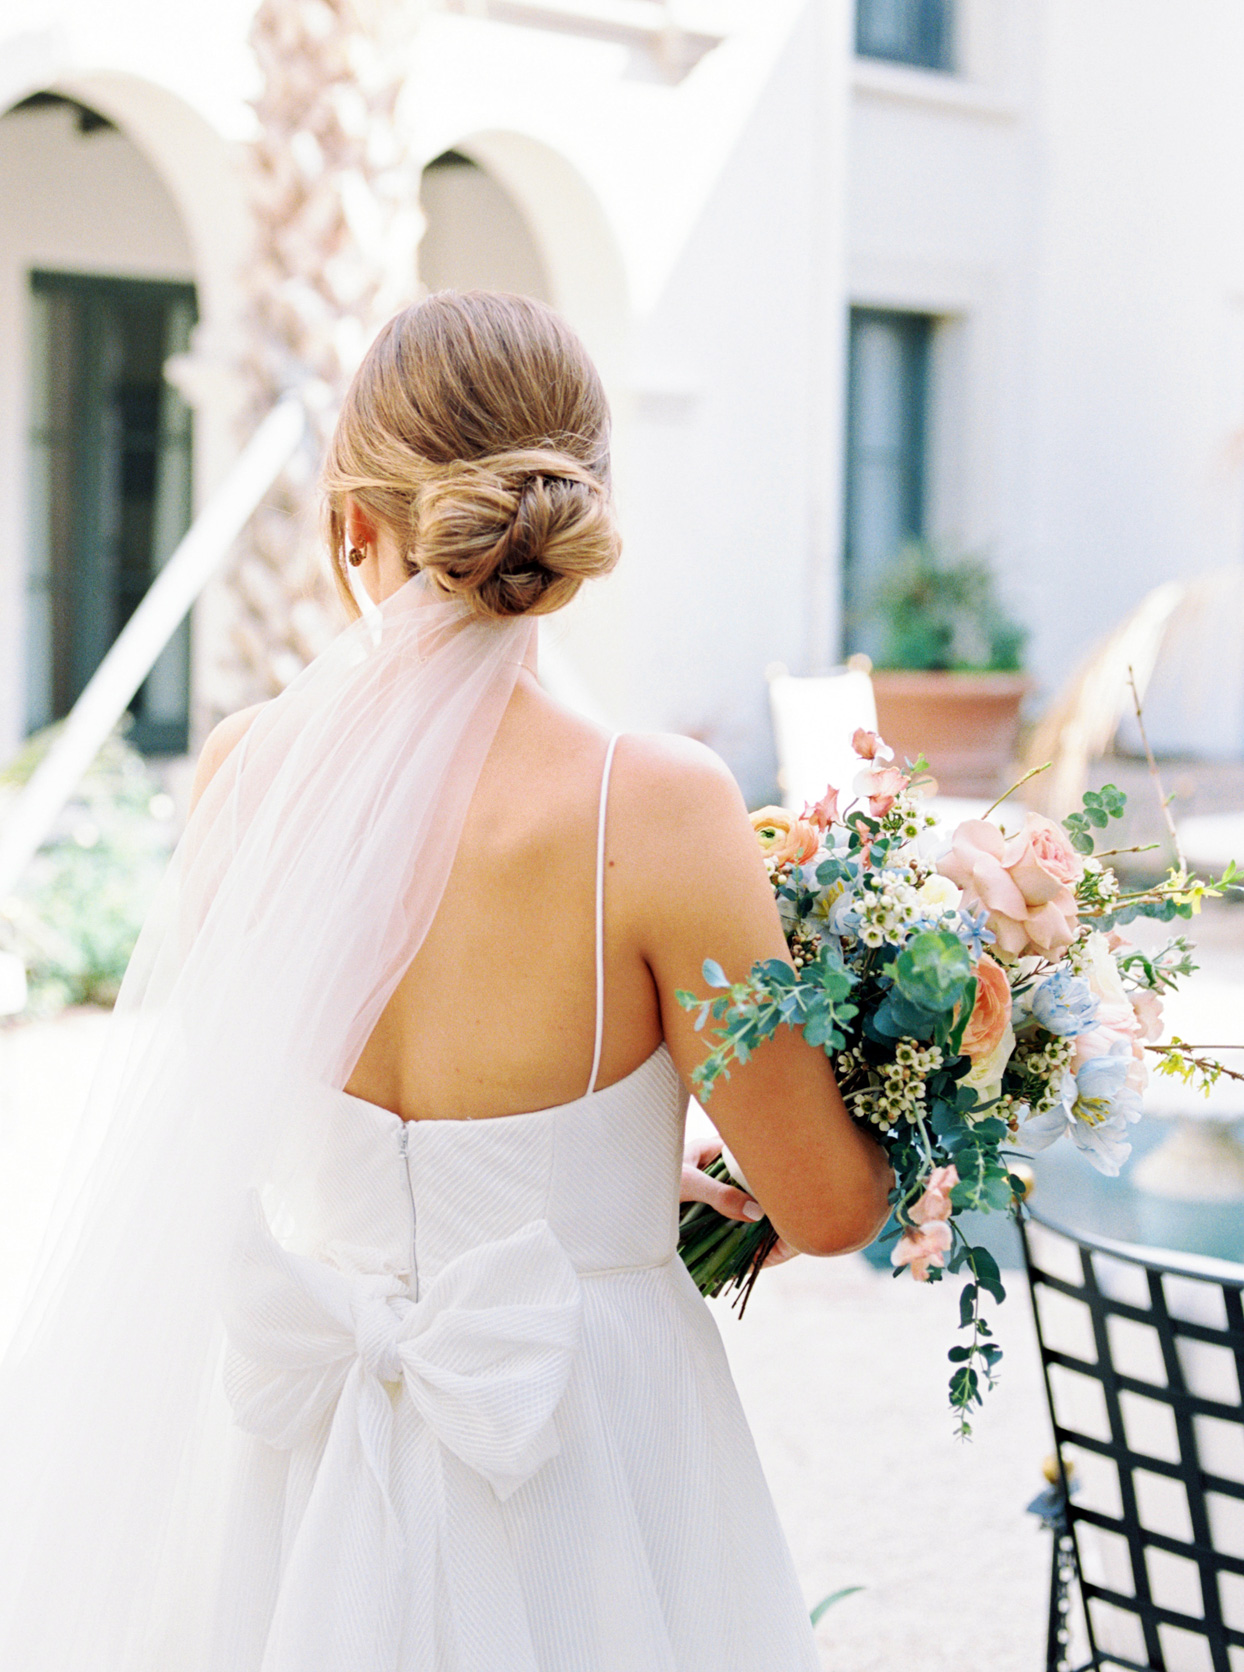 bride holding flowers showing bow on back of dress